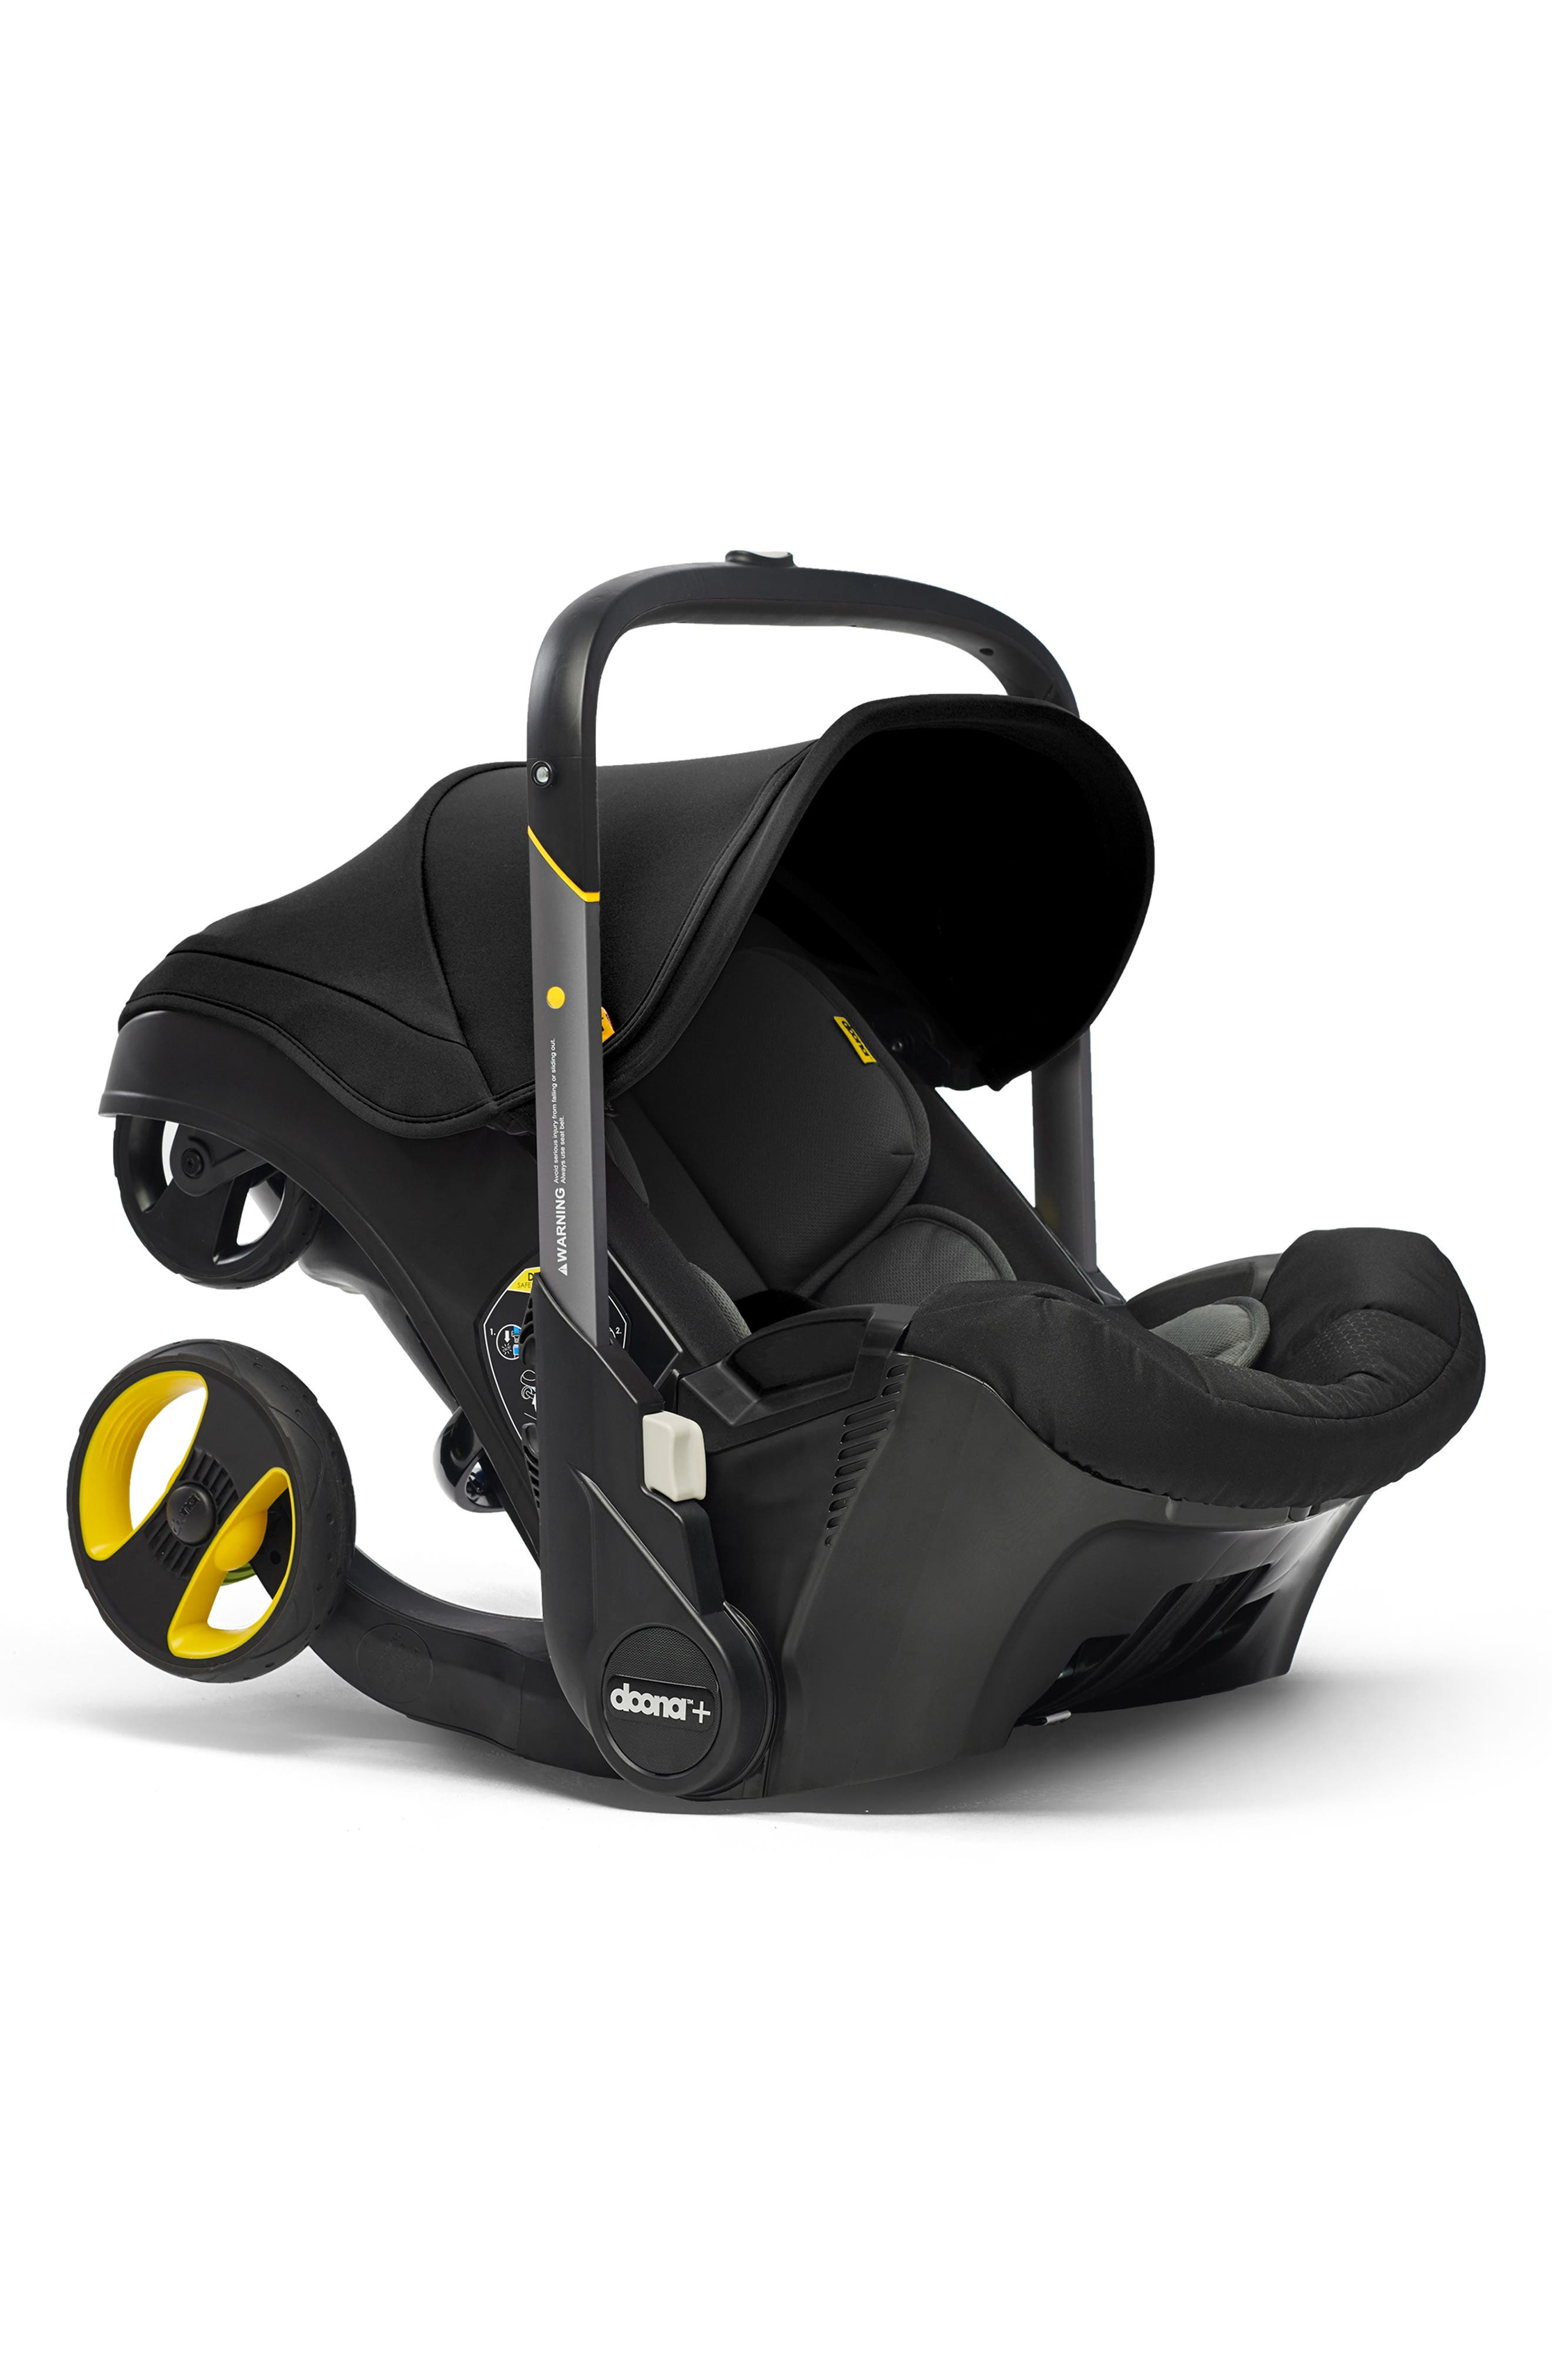 Convertible Infant Car Seat/Compact Stroller System with Base,                             Alternate thumbnail 5, color,                             BLACK/NIGHT